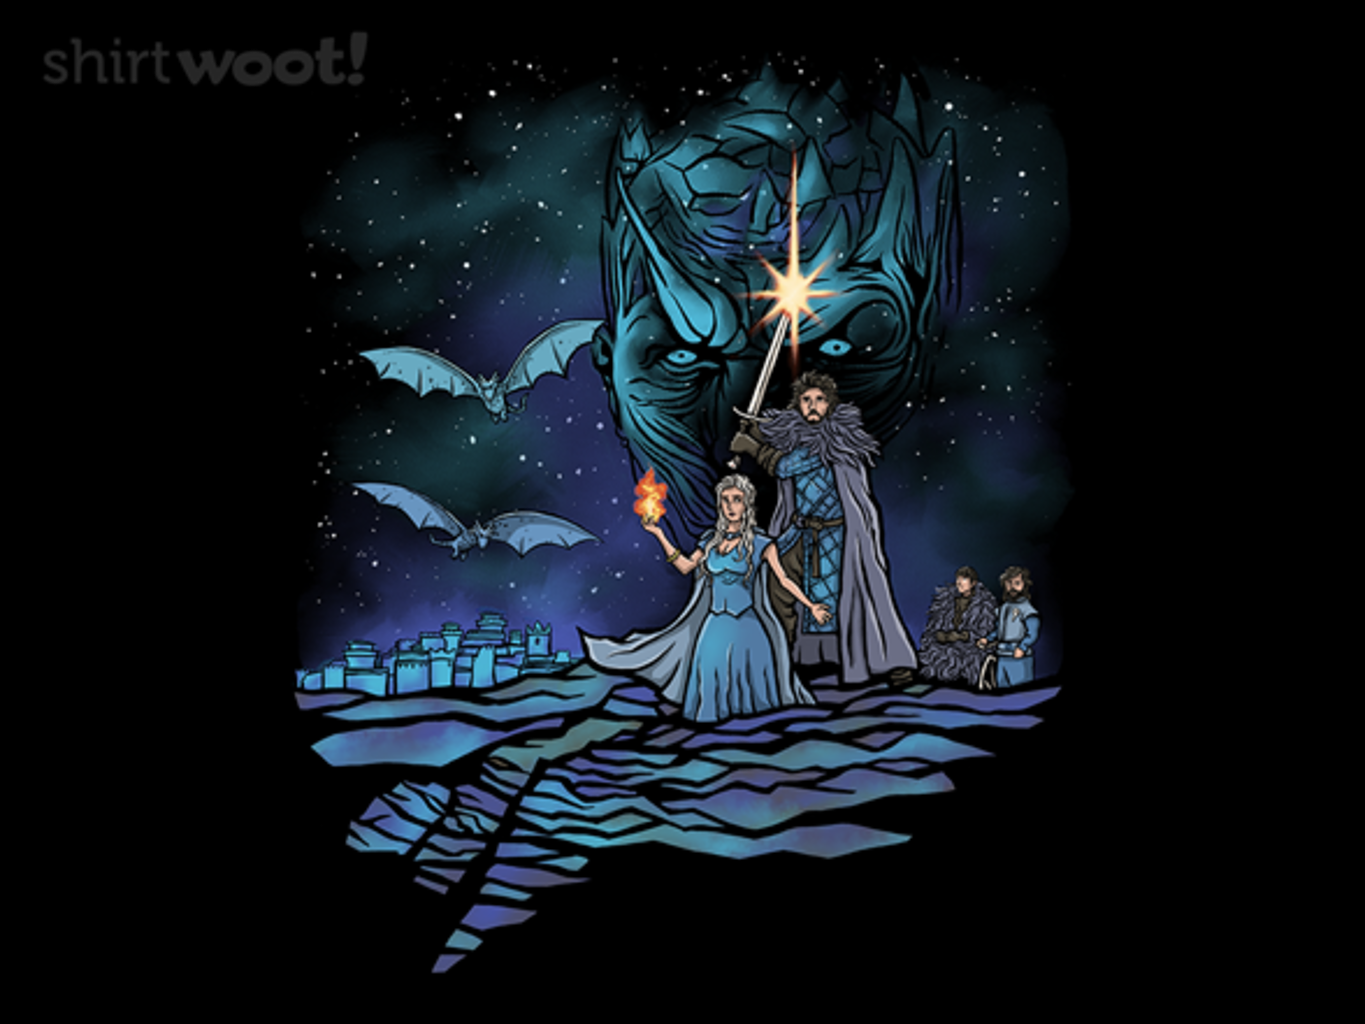 Woot!: Throne Wars: Episode VIII - A New Hope